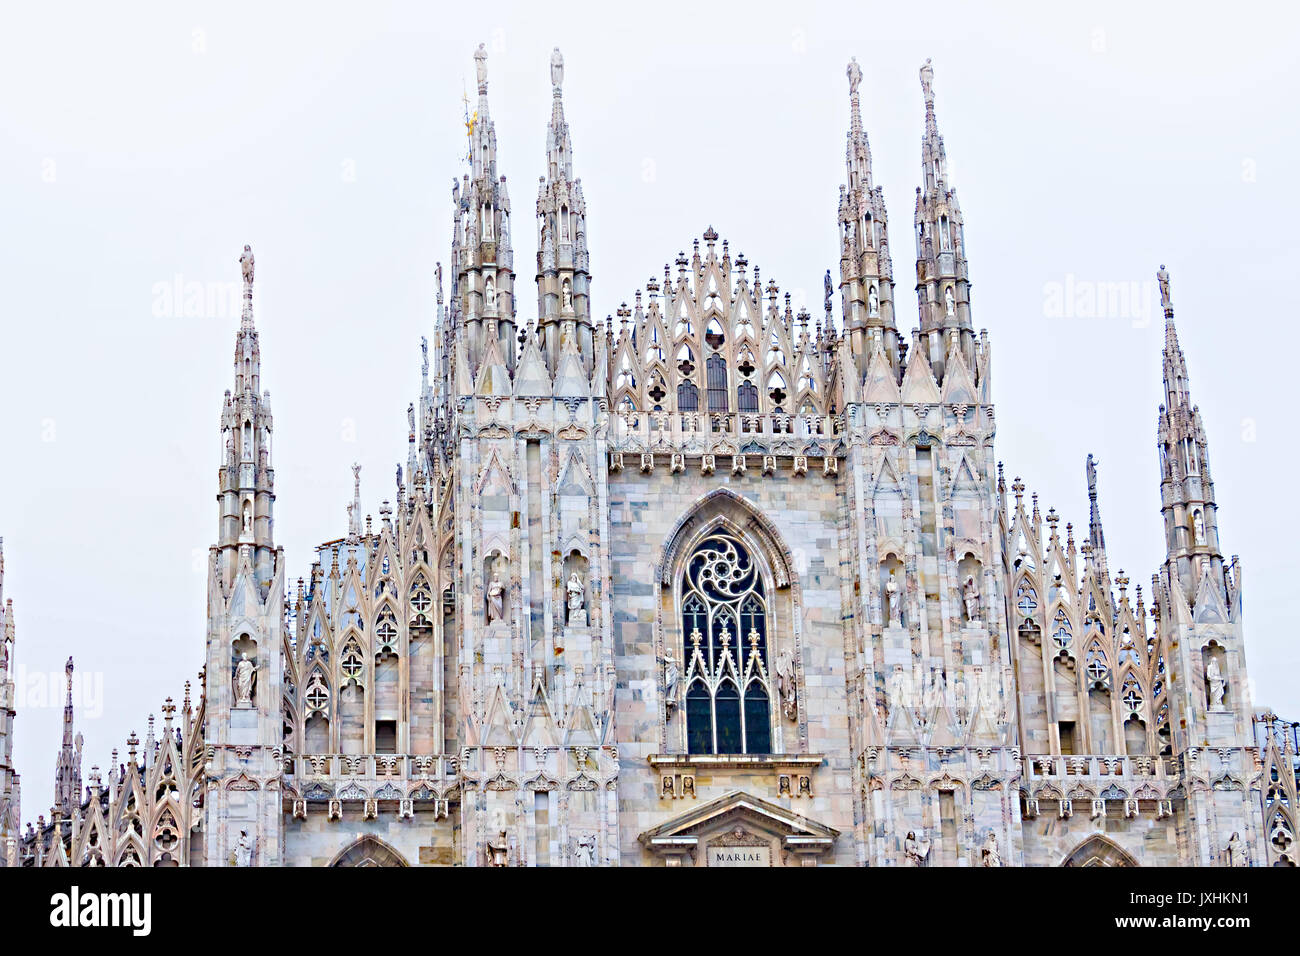 The day view of Milan Cathedral or Duomo di Milano - Stock Image